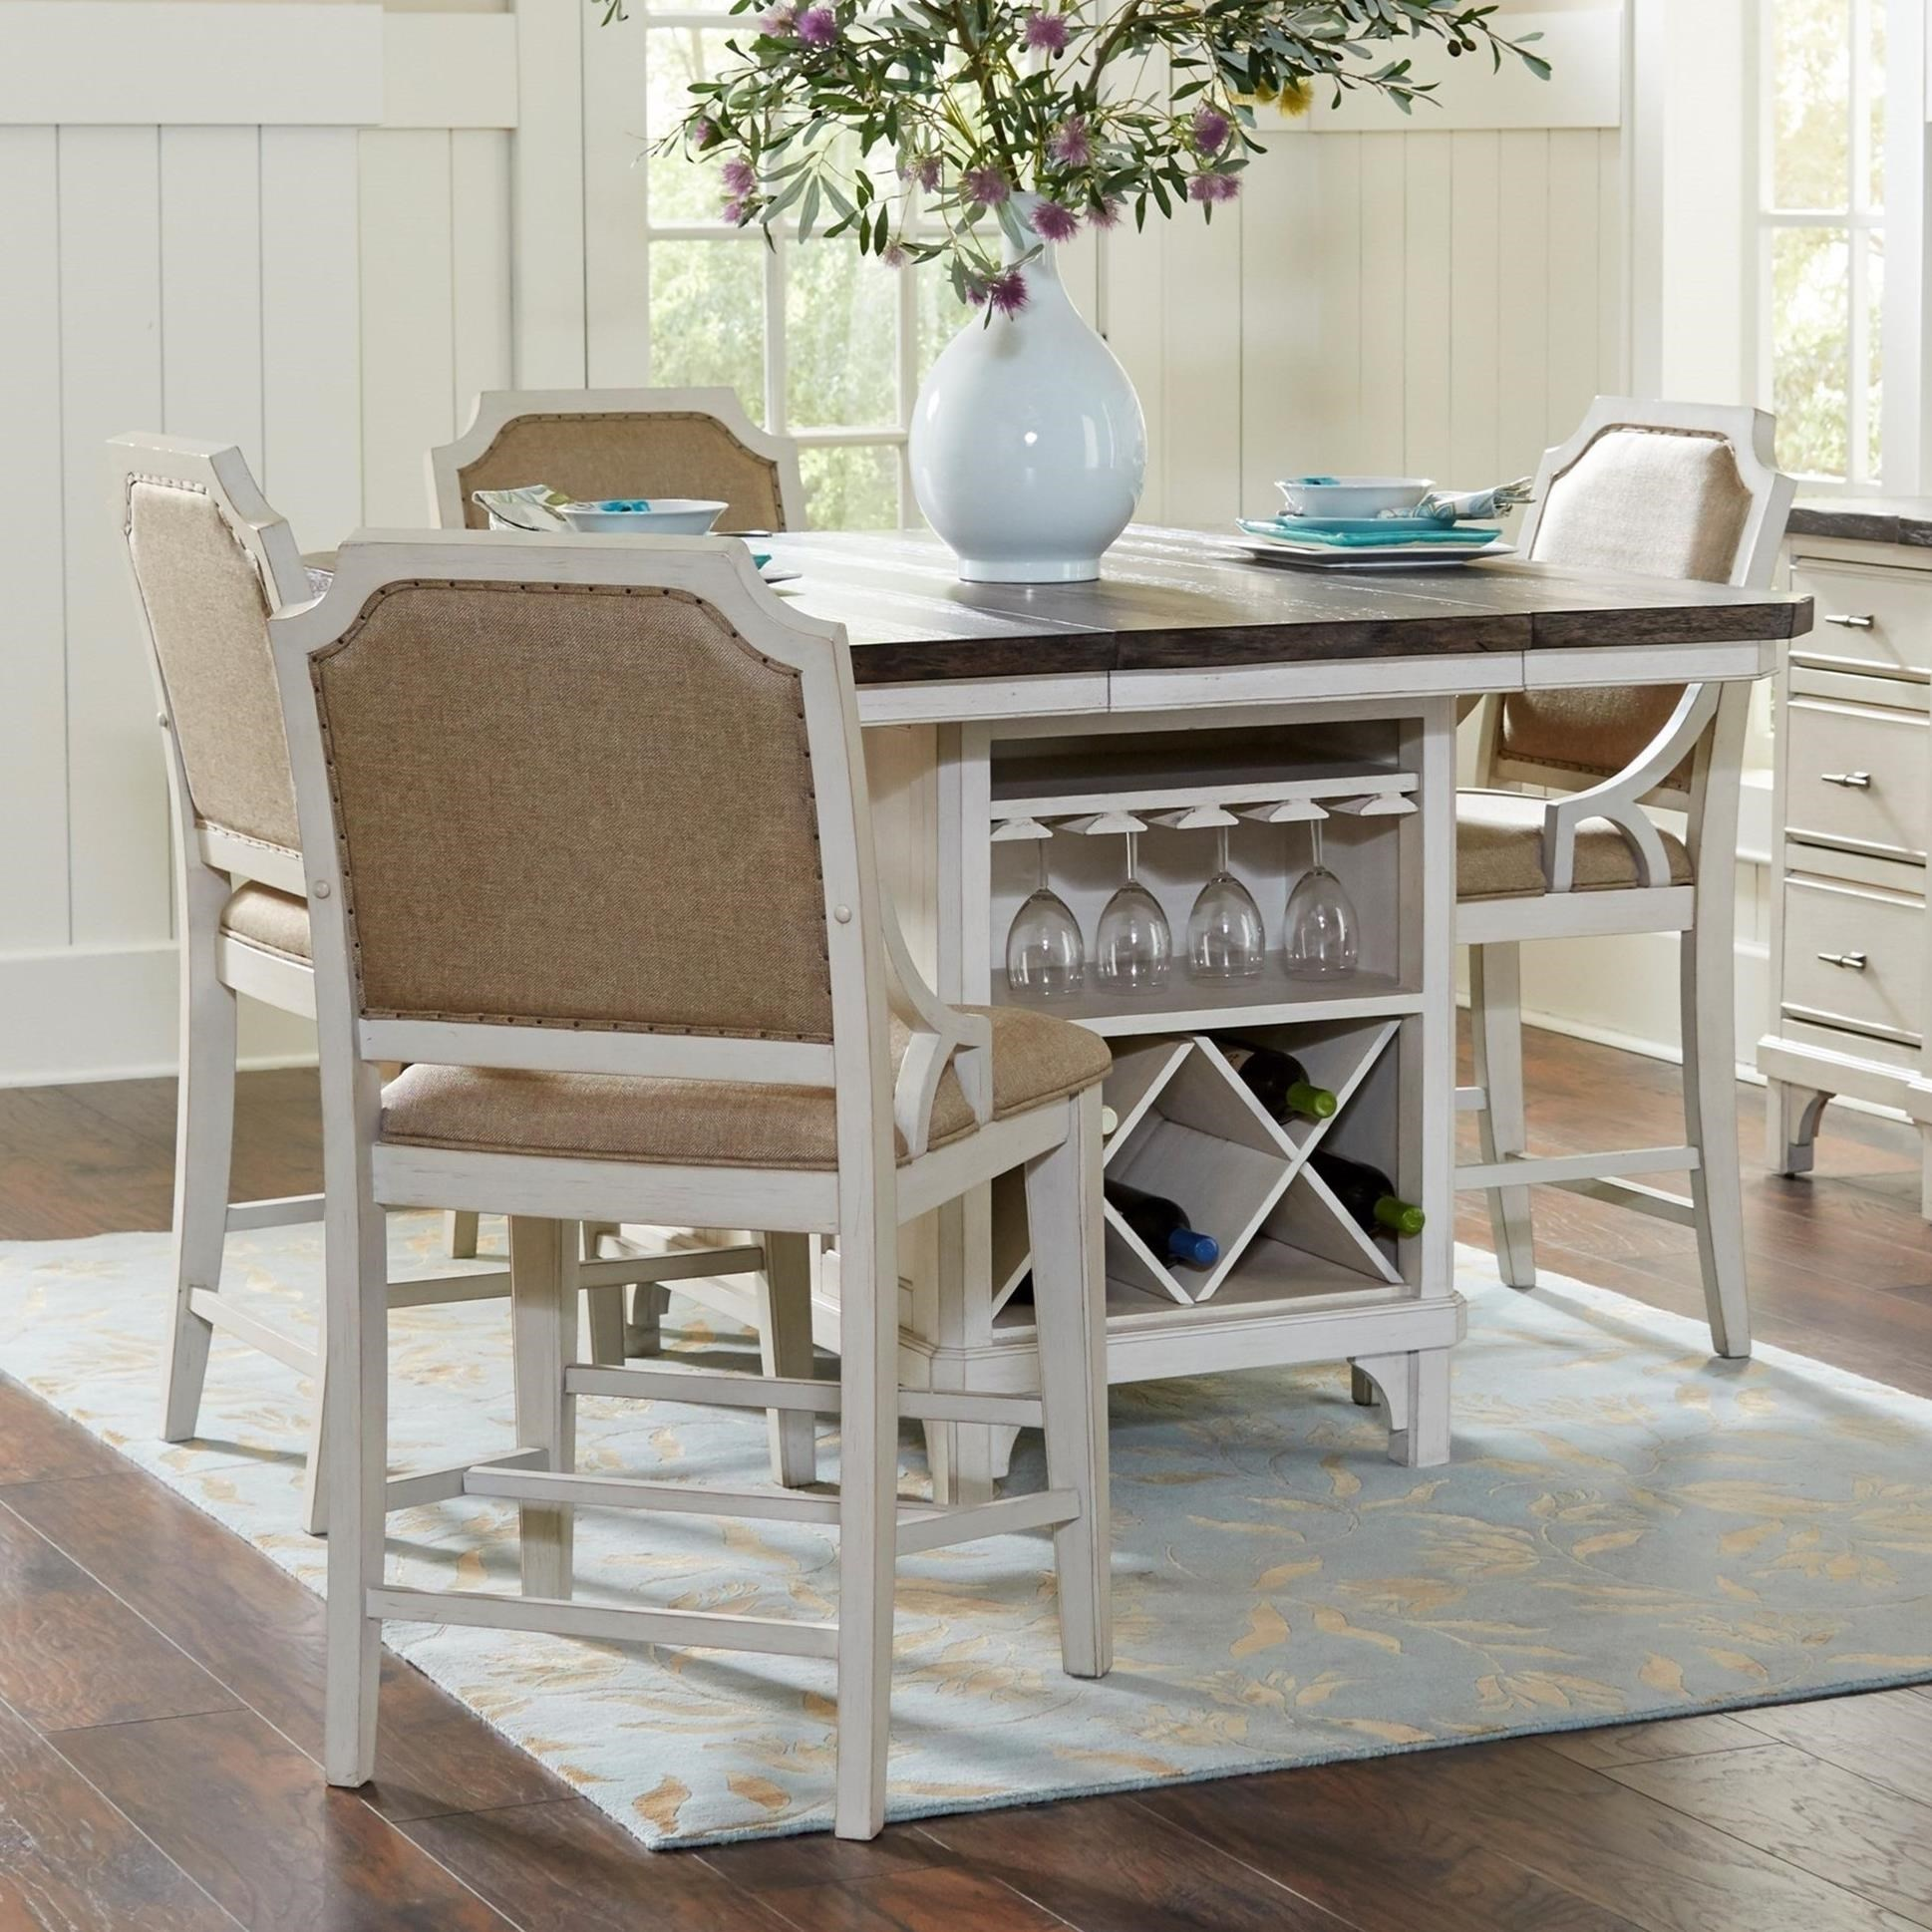 kitchen island table with chairs.  Kitchen Avalon Furniture Mystic Cay5Piece Kitchen Island Table Set  Inside With Chairs S